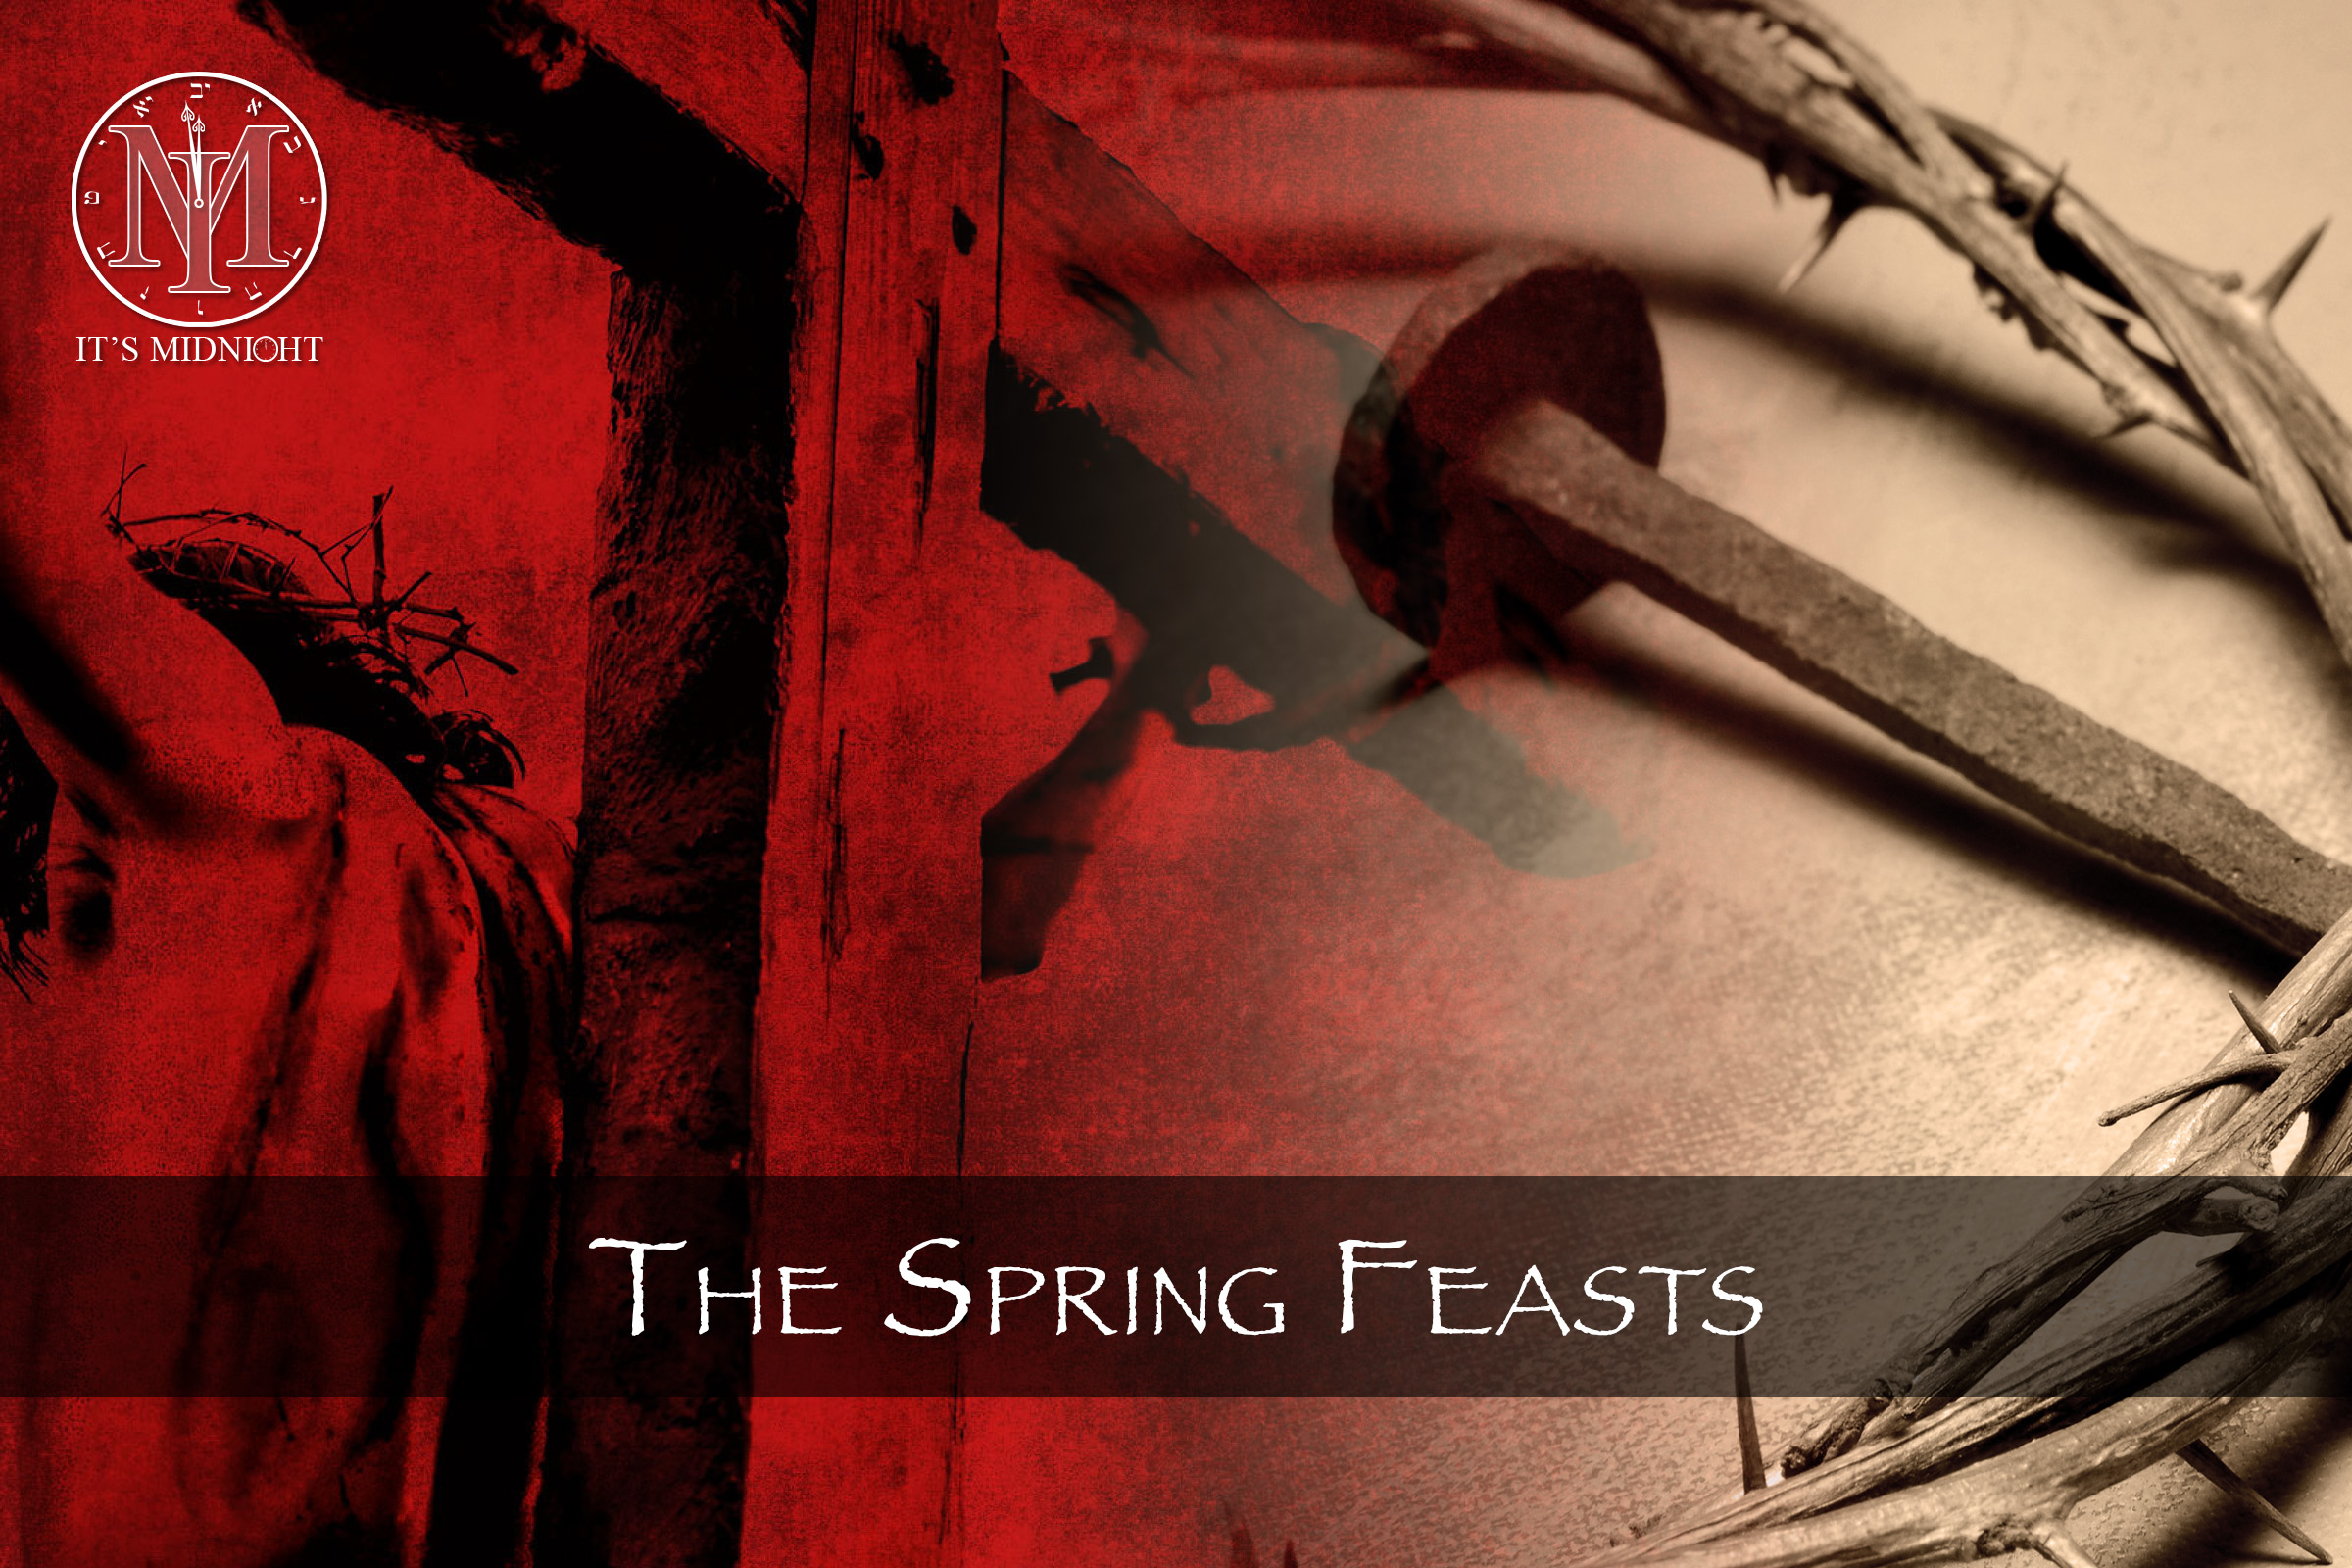 The Spring Feasts